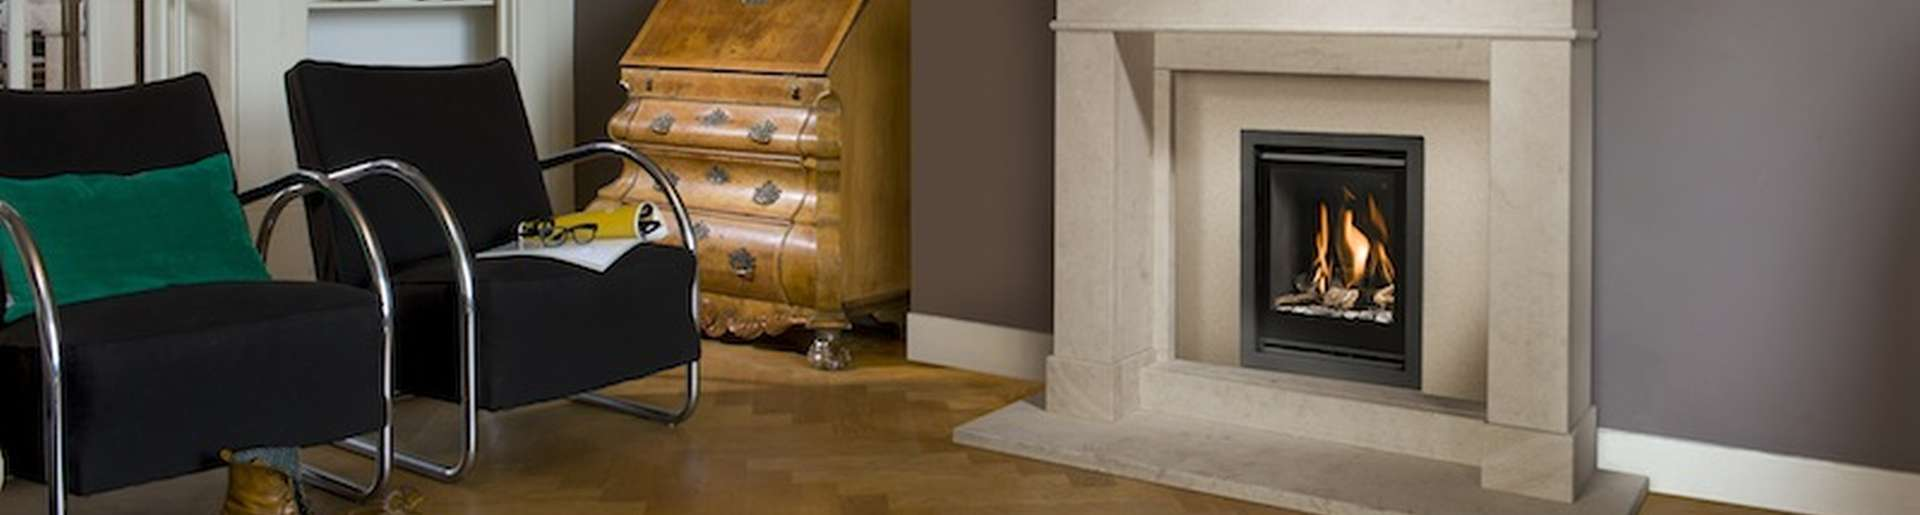 bellfires barbas gas fire gas stove stoves perth